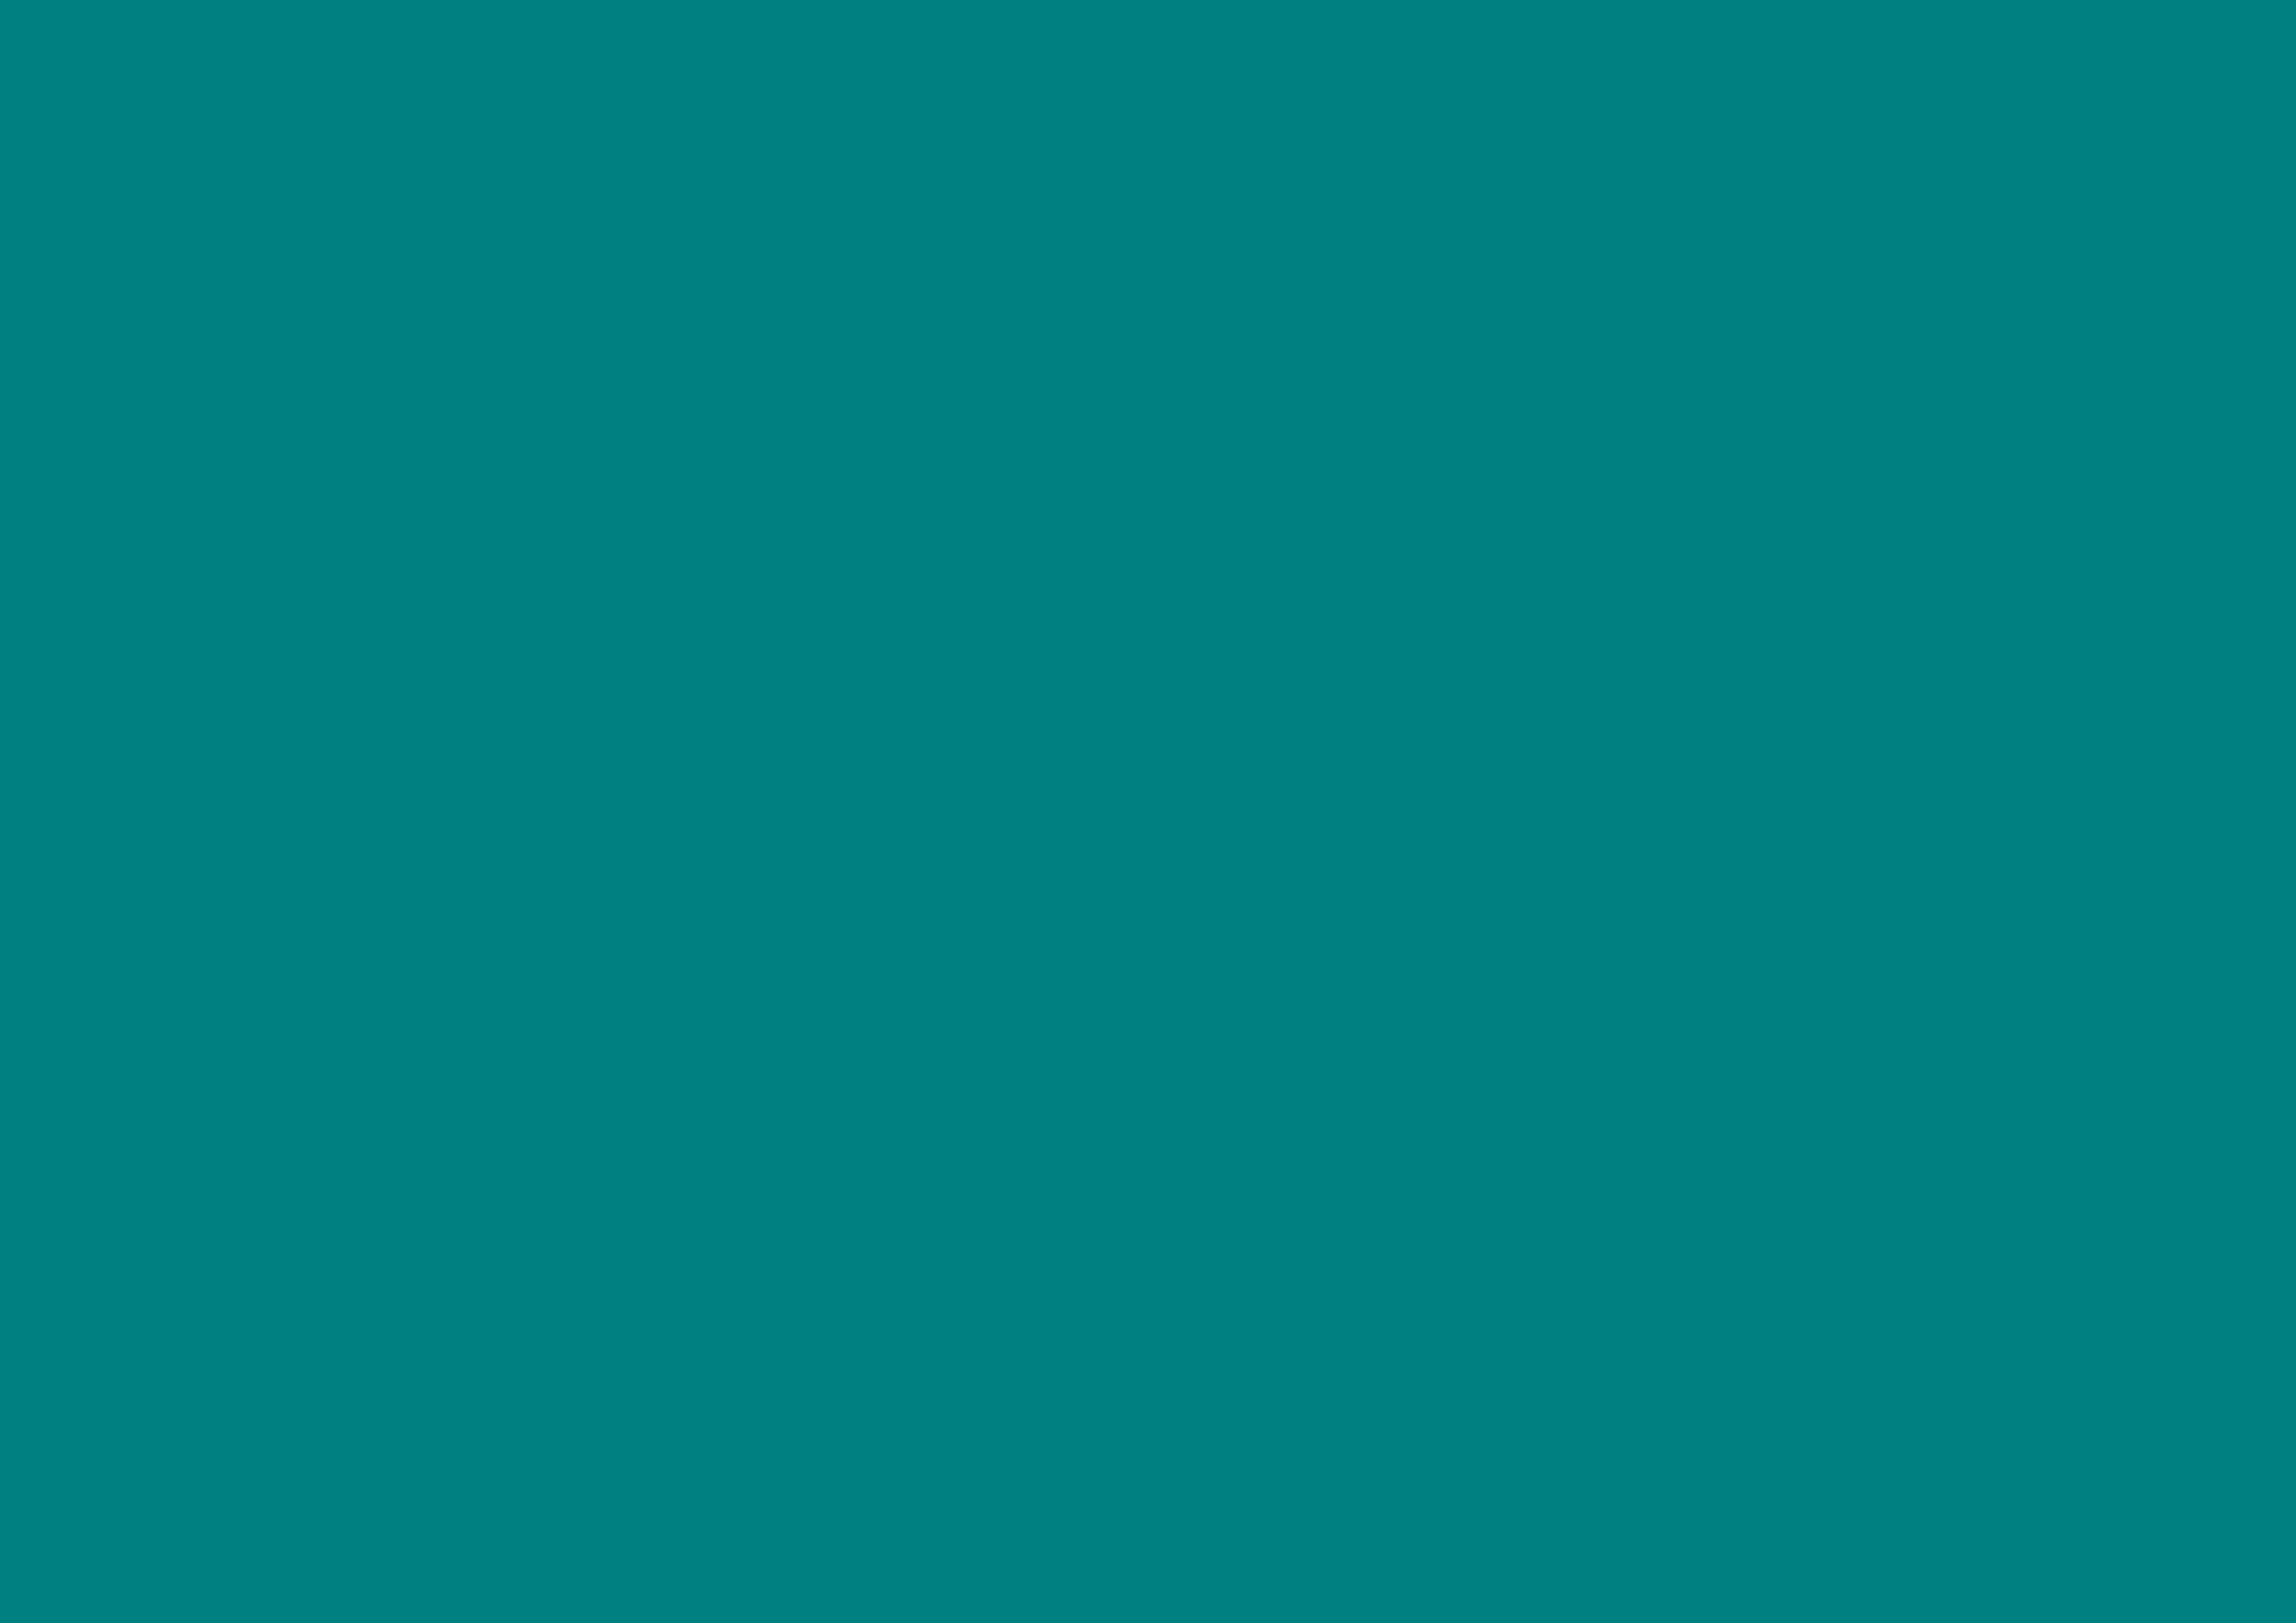 3508x2480 Teal Solid Color Background